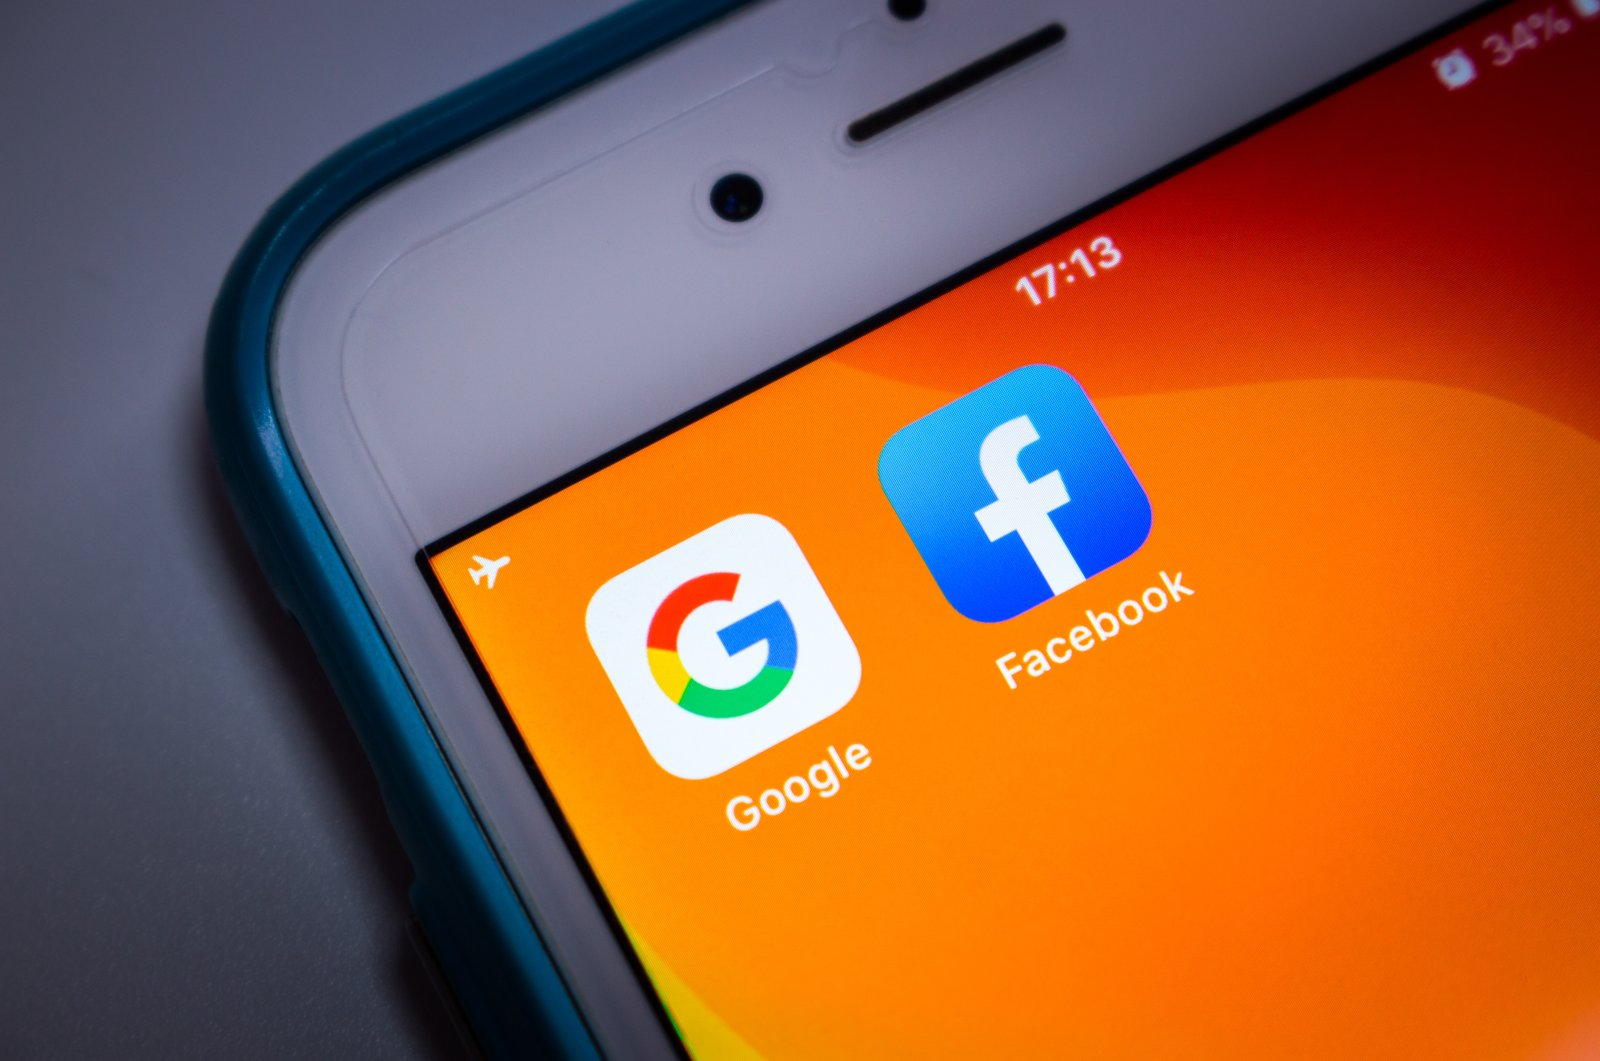 The icons of Google and Facebook icons are seen on the screen of an iPhone in this file photo taken in Kumamoto, Japan, May 21, 2020. (Shutterstock Photo)